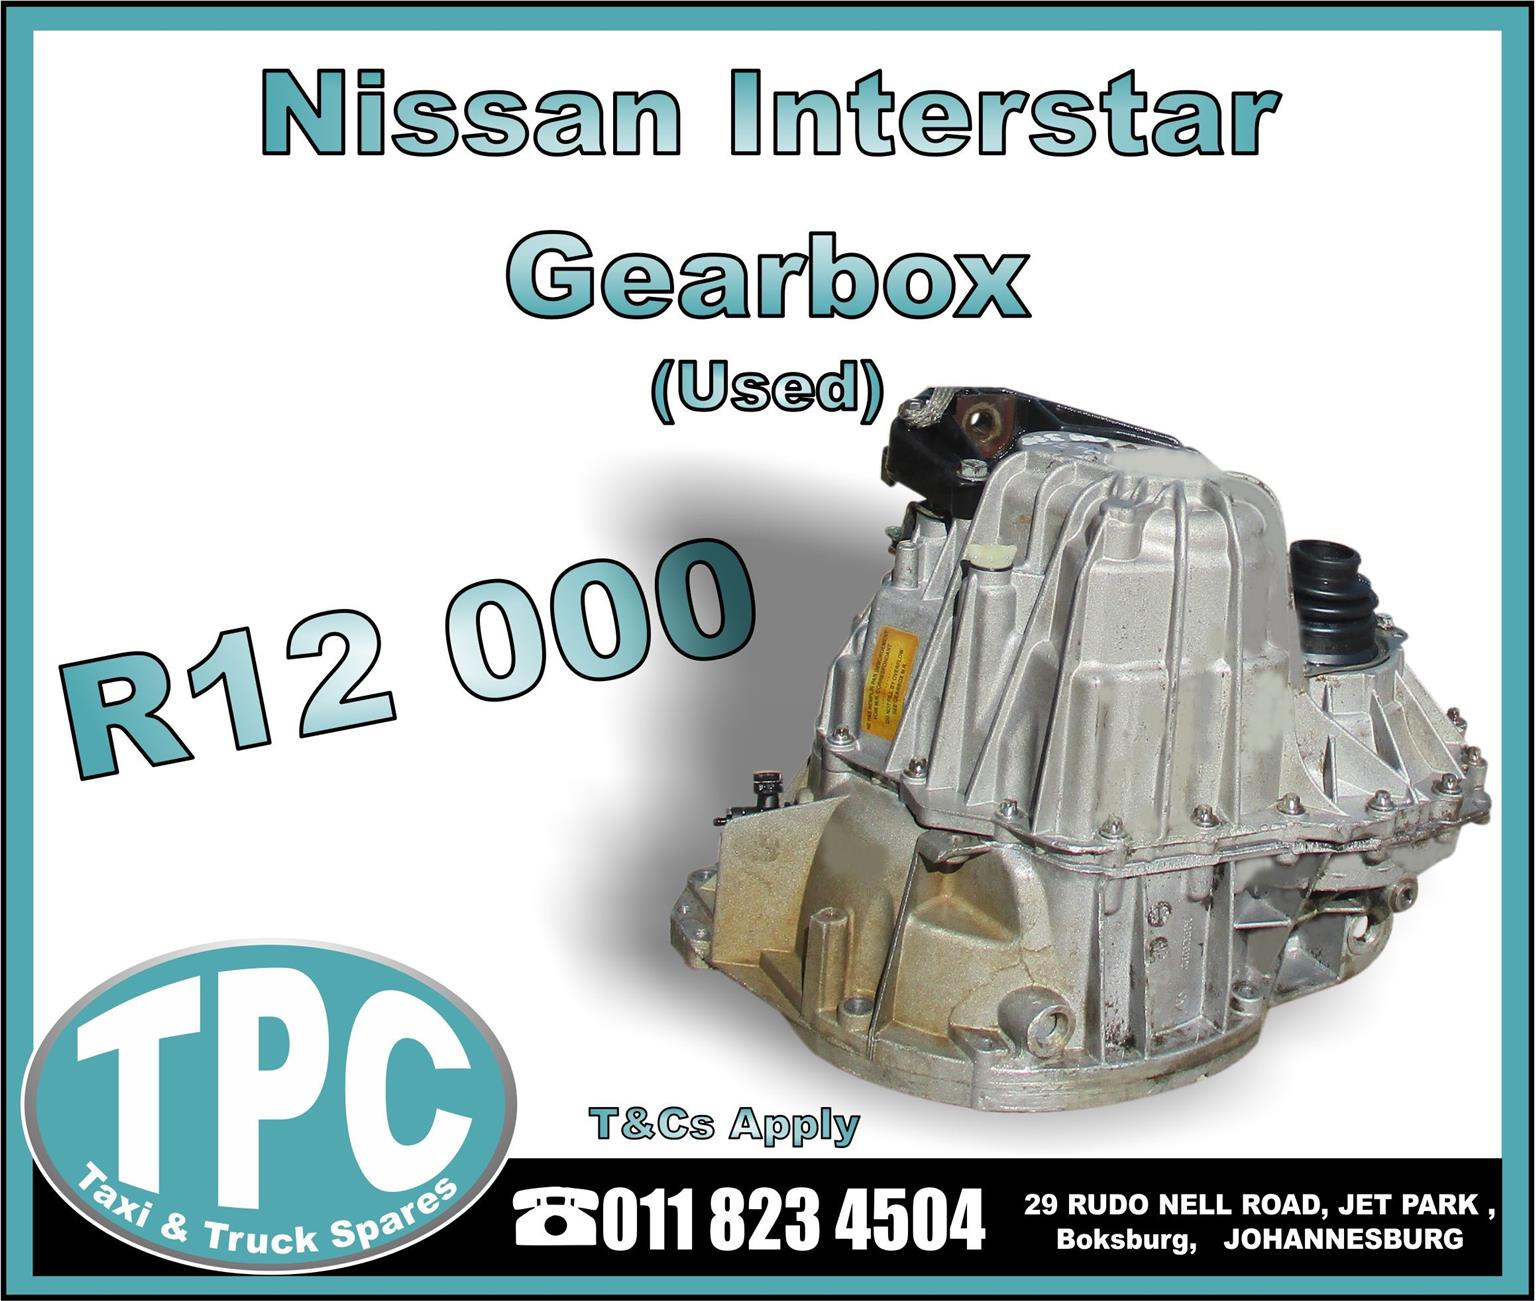 Nissan Interstar Gearbox - Used - New And Used Quality Replacement Taxi Spare Parts - TPC